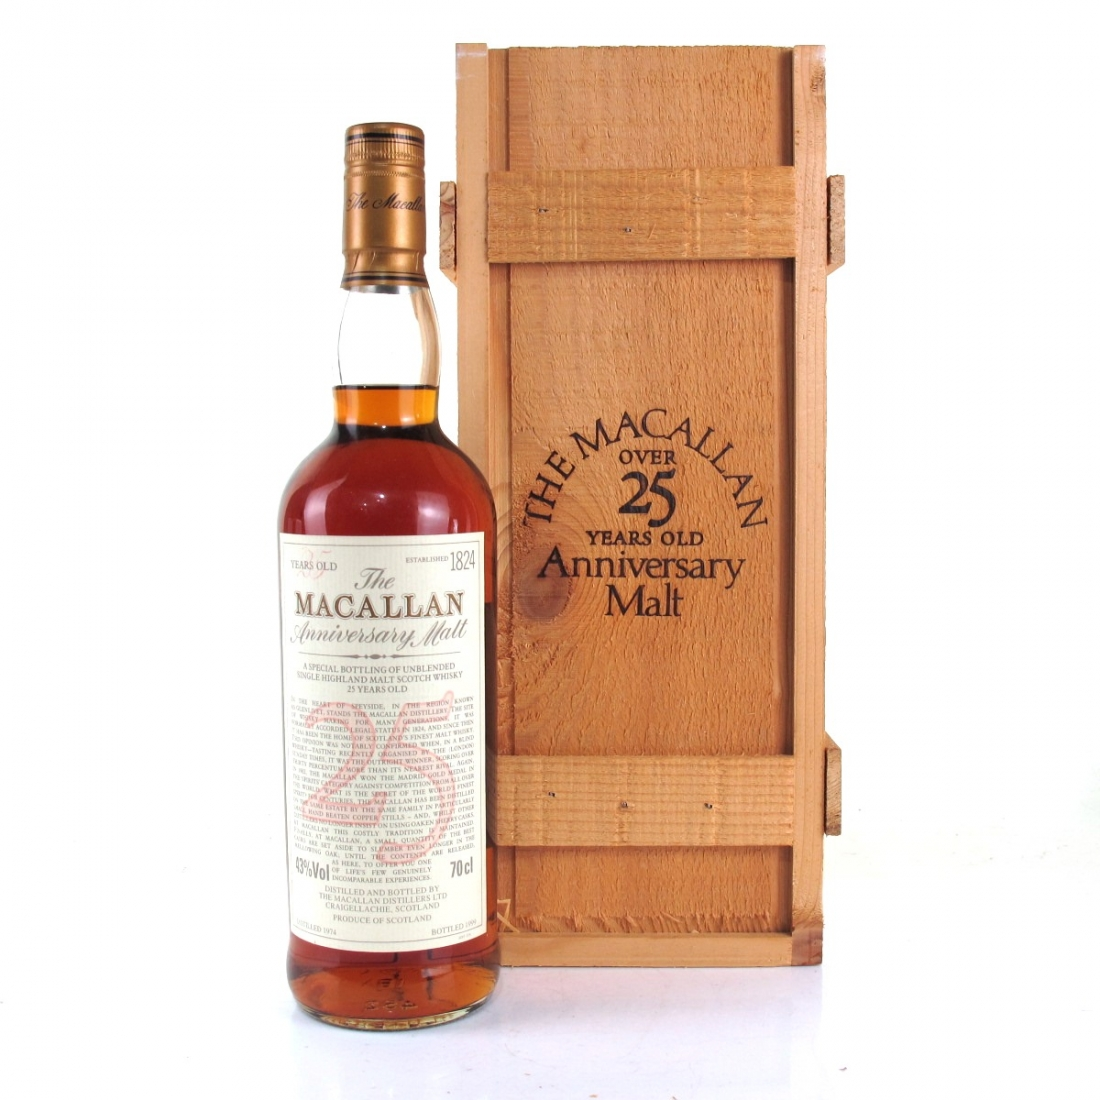 Macallan 1974 Anniversary Malt 25 Year Old